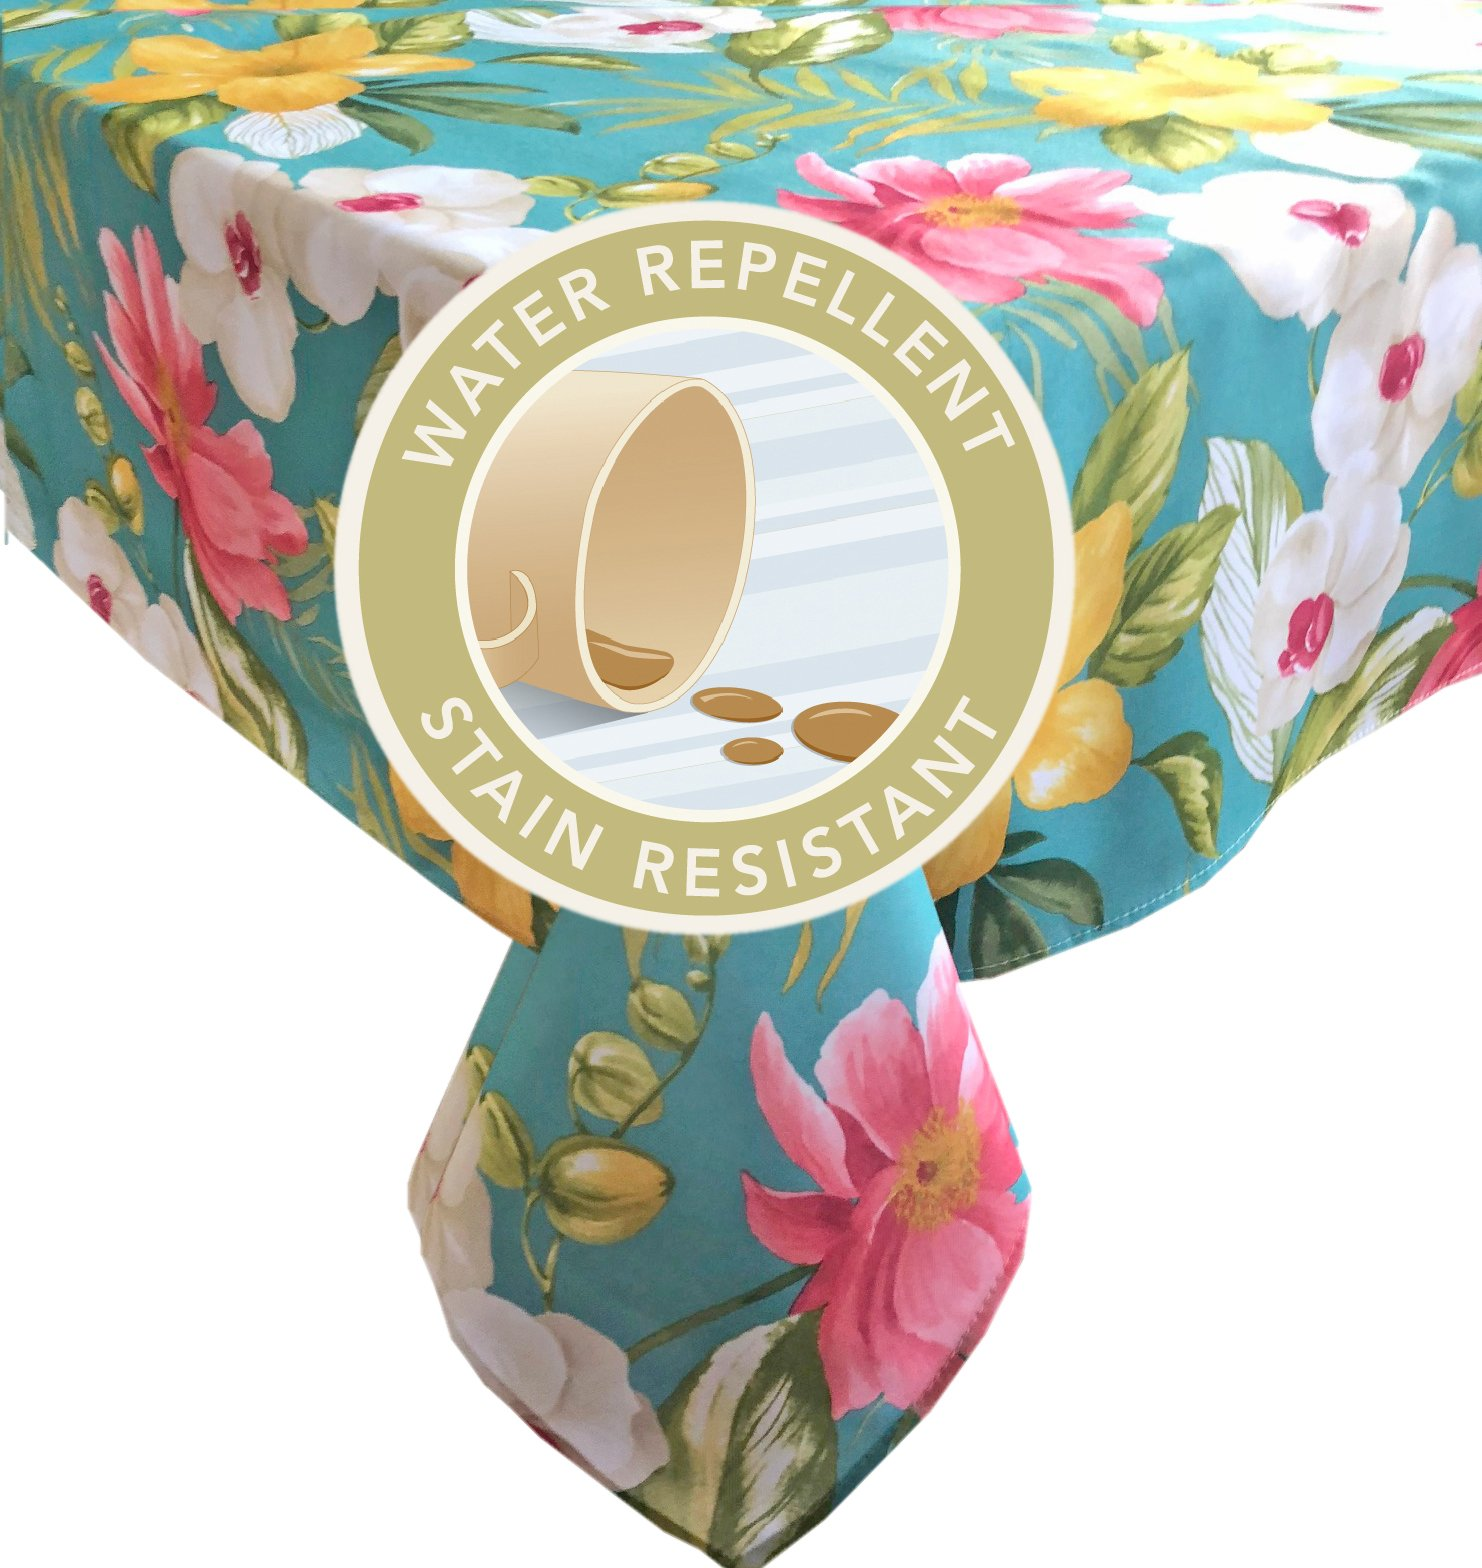 Calla Lily Teal Tropical Floral Summer and Spring Indoor/Outdoor Soil Resistant and Water Repellent Fabric Tablecloth - Patio, Picnic, BBQ, Kitchen Table Linens, 60 Inch X 102 Inch Oblong, Teal